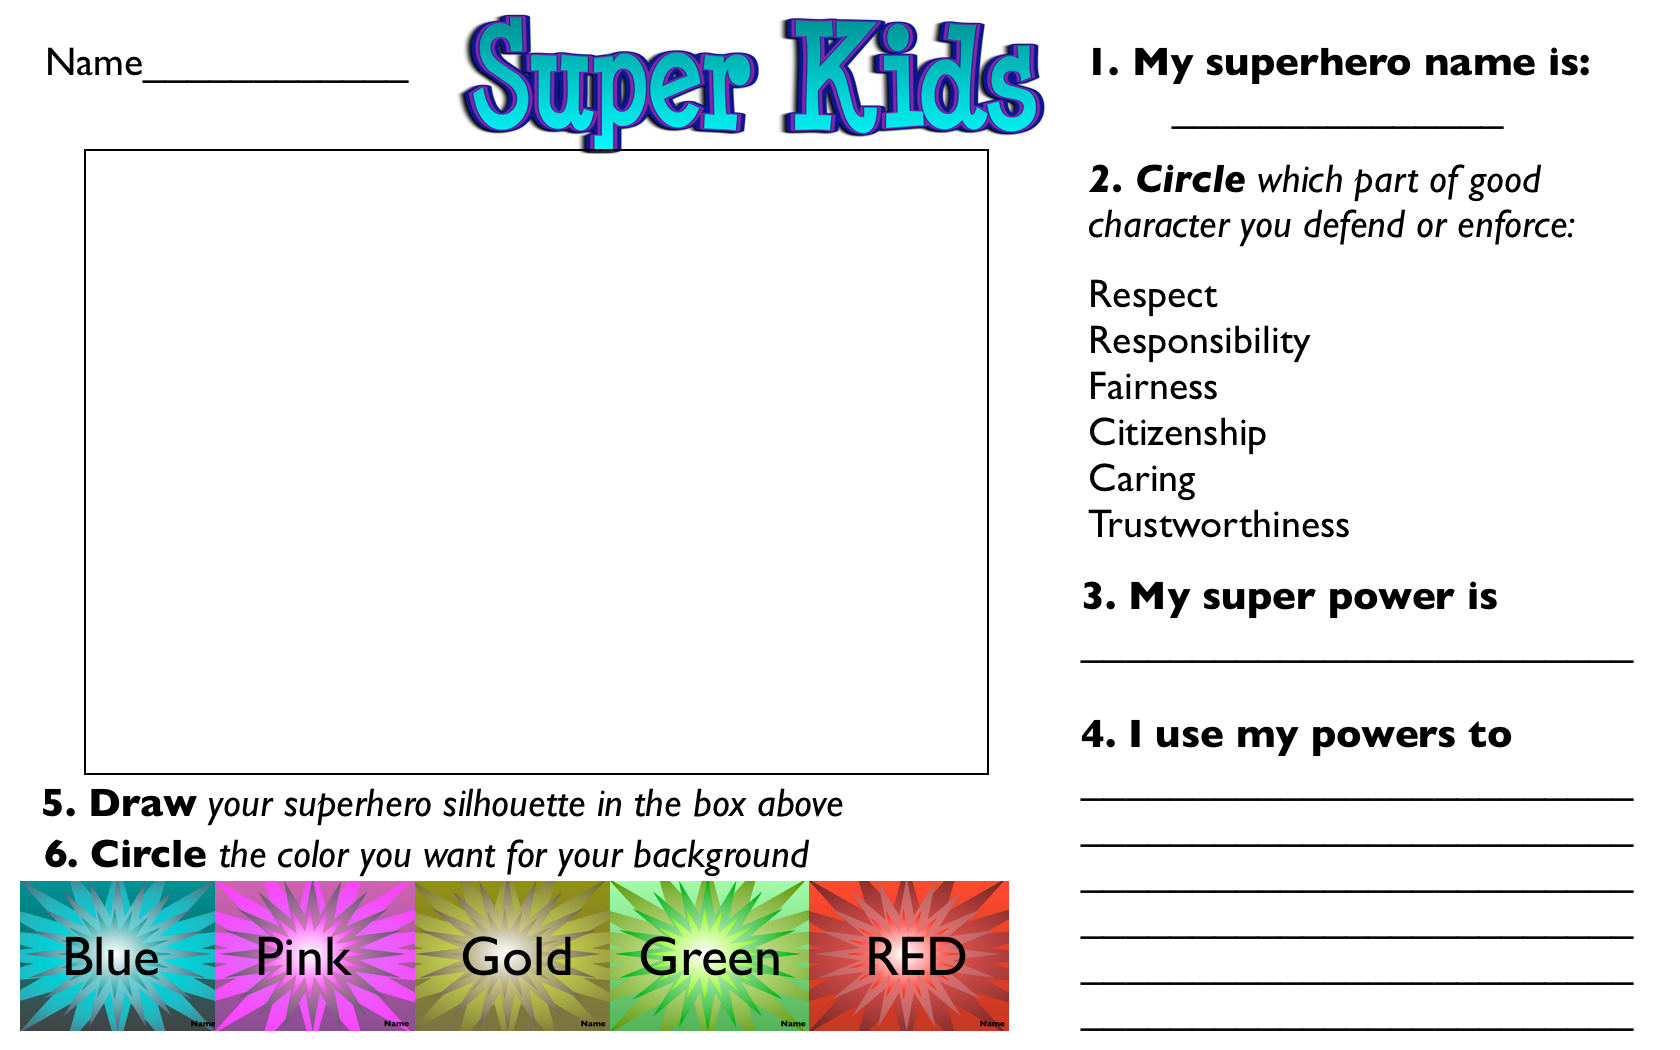 Worksheets Six Pillars Of Character Worksheets character counts worksheets free library download and six pillars of 6 pinterest